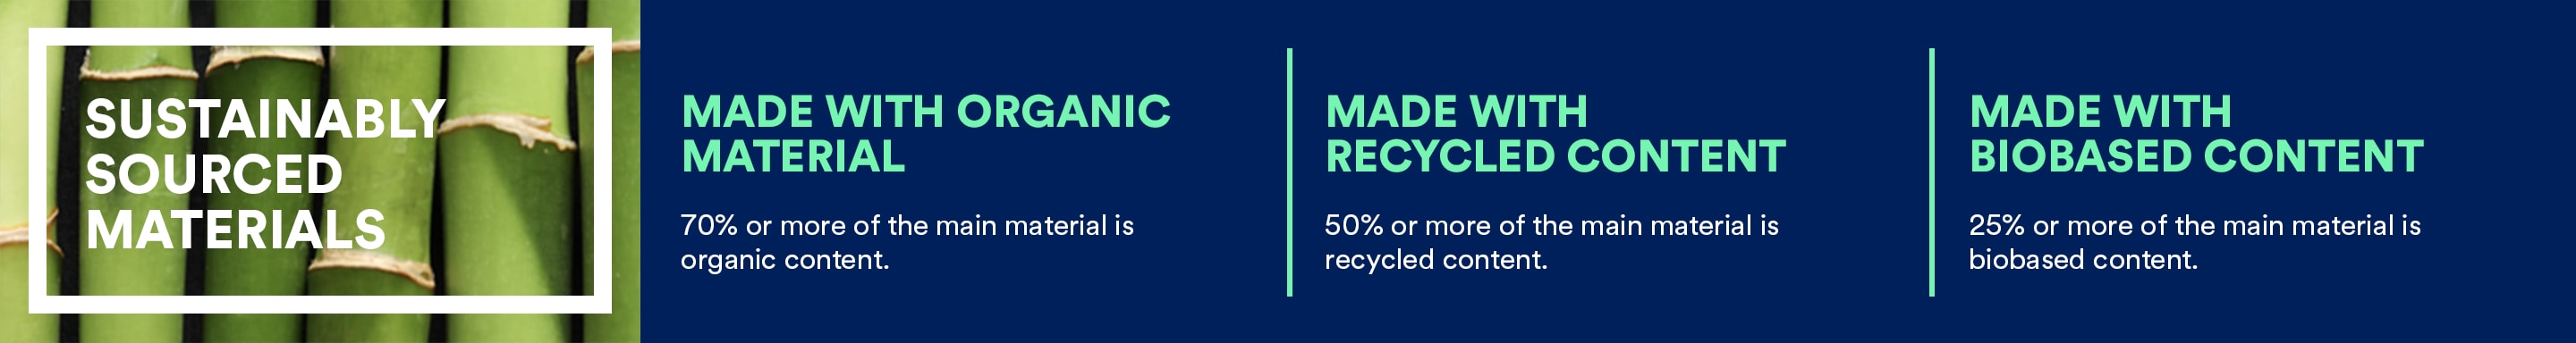 SUSTAINABLY SOURCED MATERIALS; Made With Organic Material, Recycled Content, and Boiobased Content